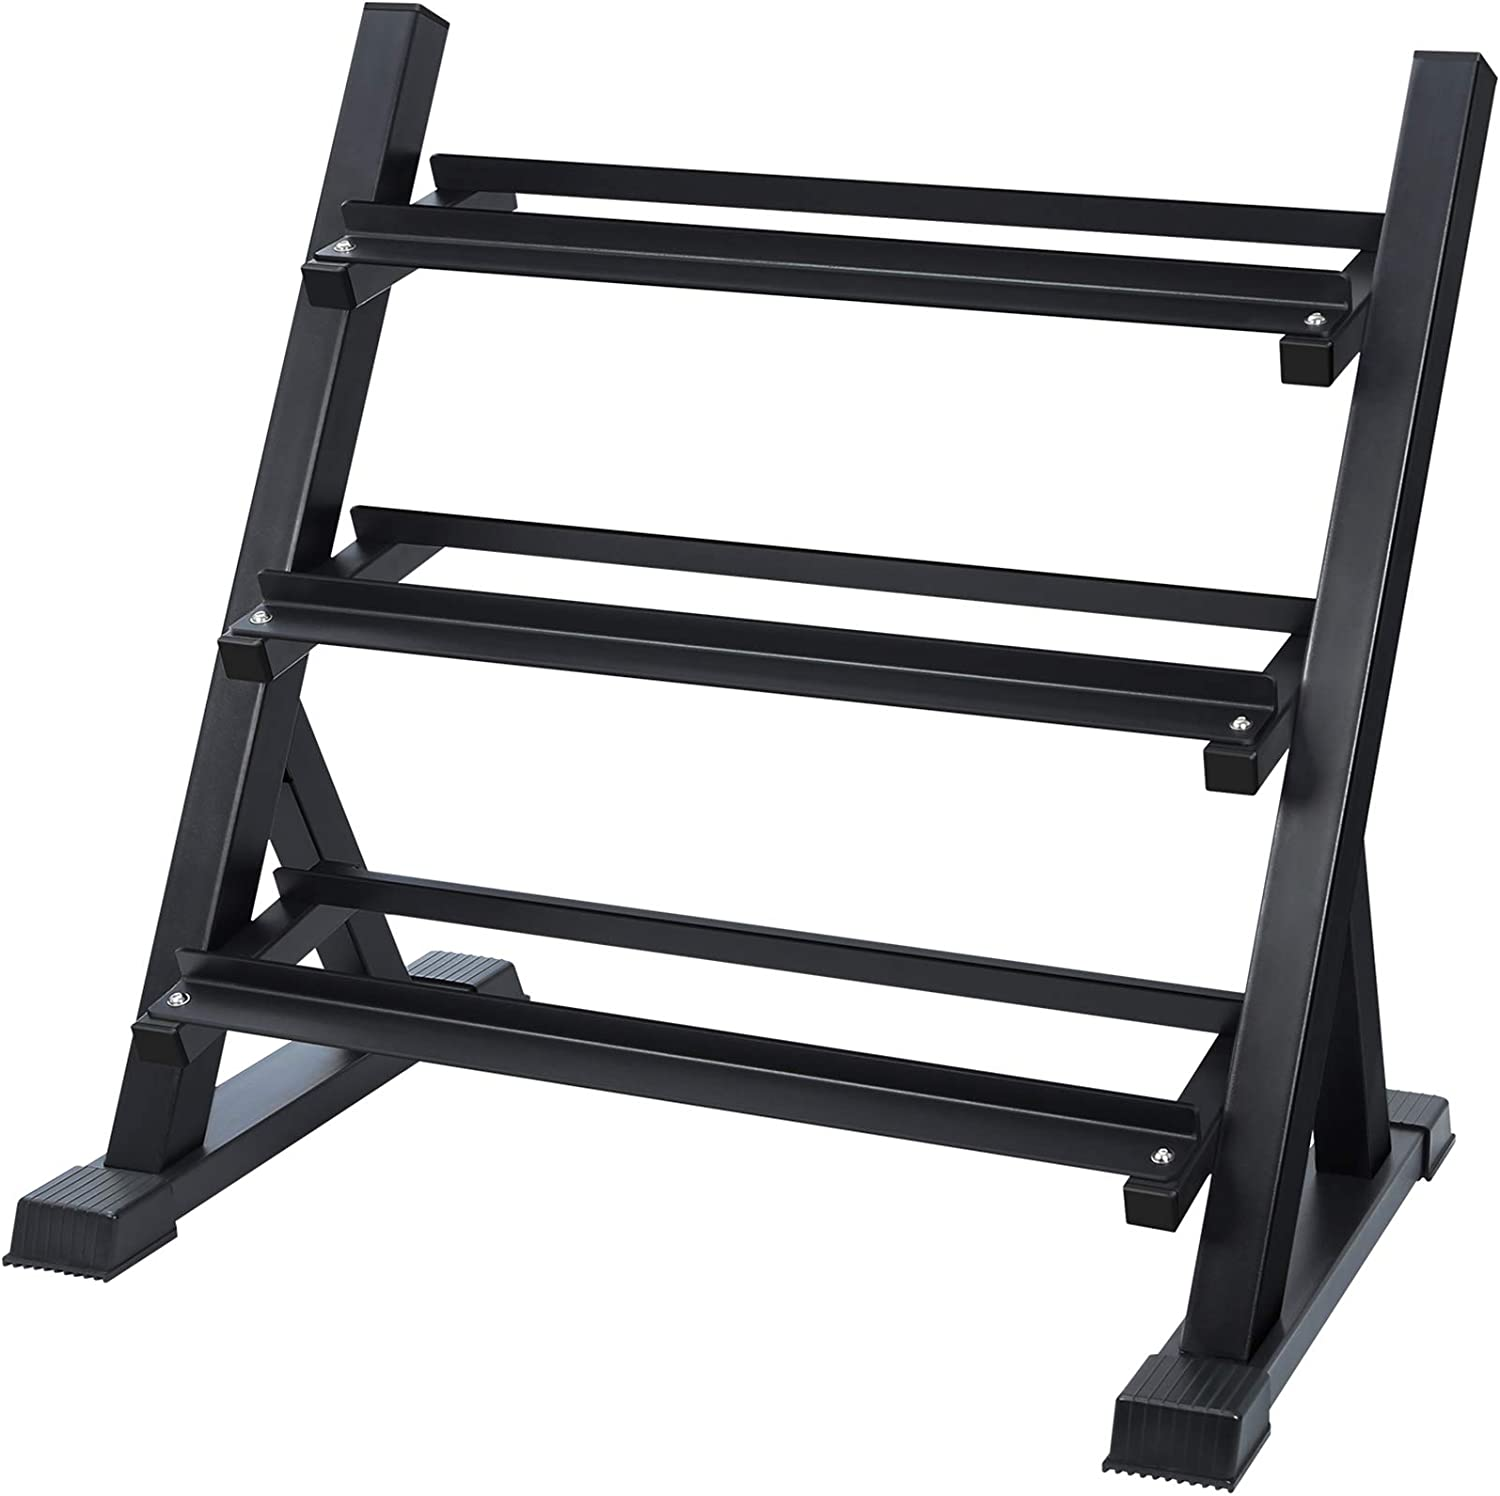 Dumbbell Rack 8.5x7.9x8.7 inch, Black 3 Layer Dumbbell Storage Rack Stand Hand Weight Tower Stand Weightlifting Dumbbell Holder Floor Bracket for Home Indoor/&Outdoor Hand Weight Fitness Training Clearance Sale